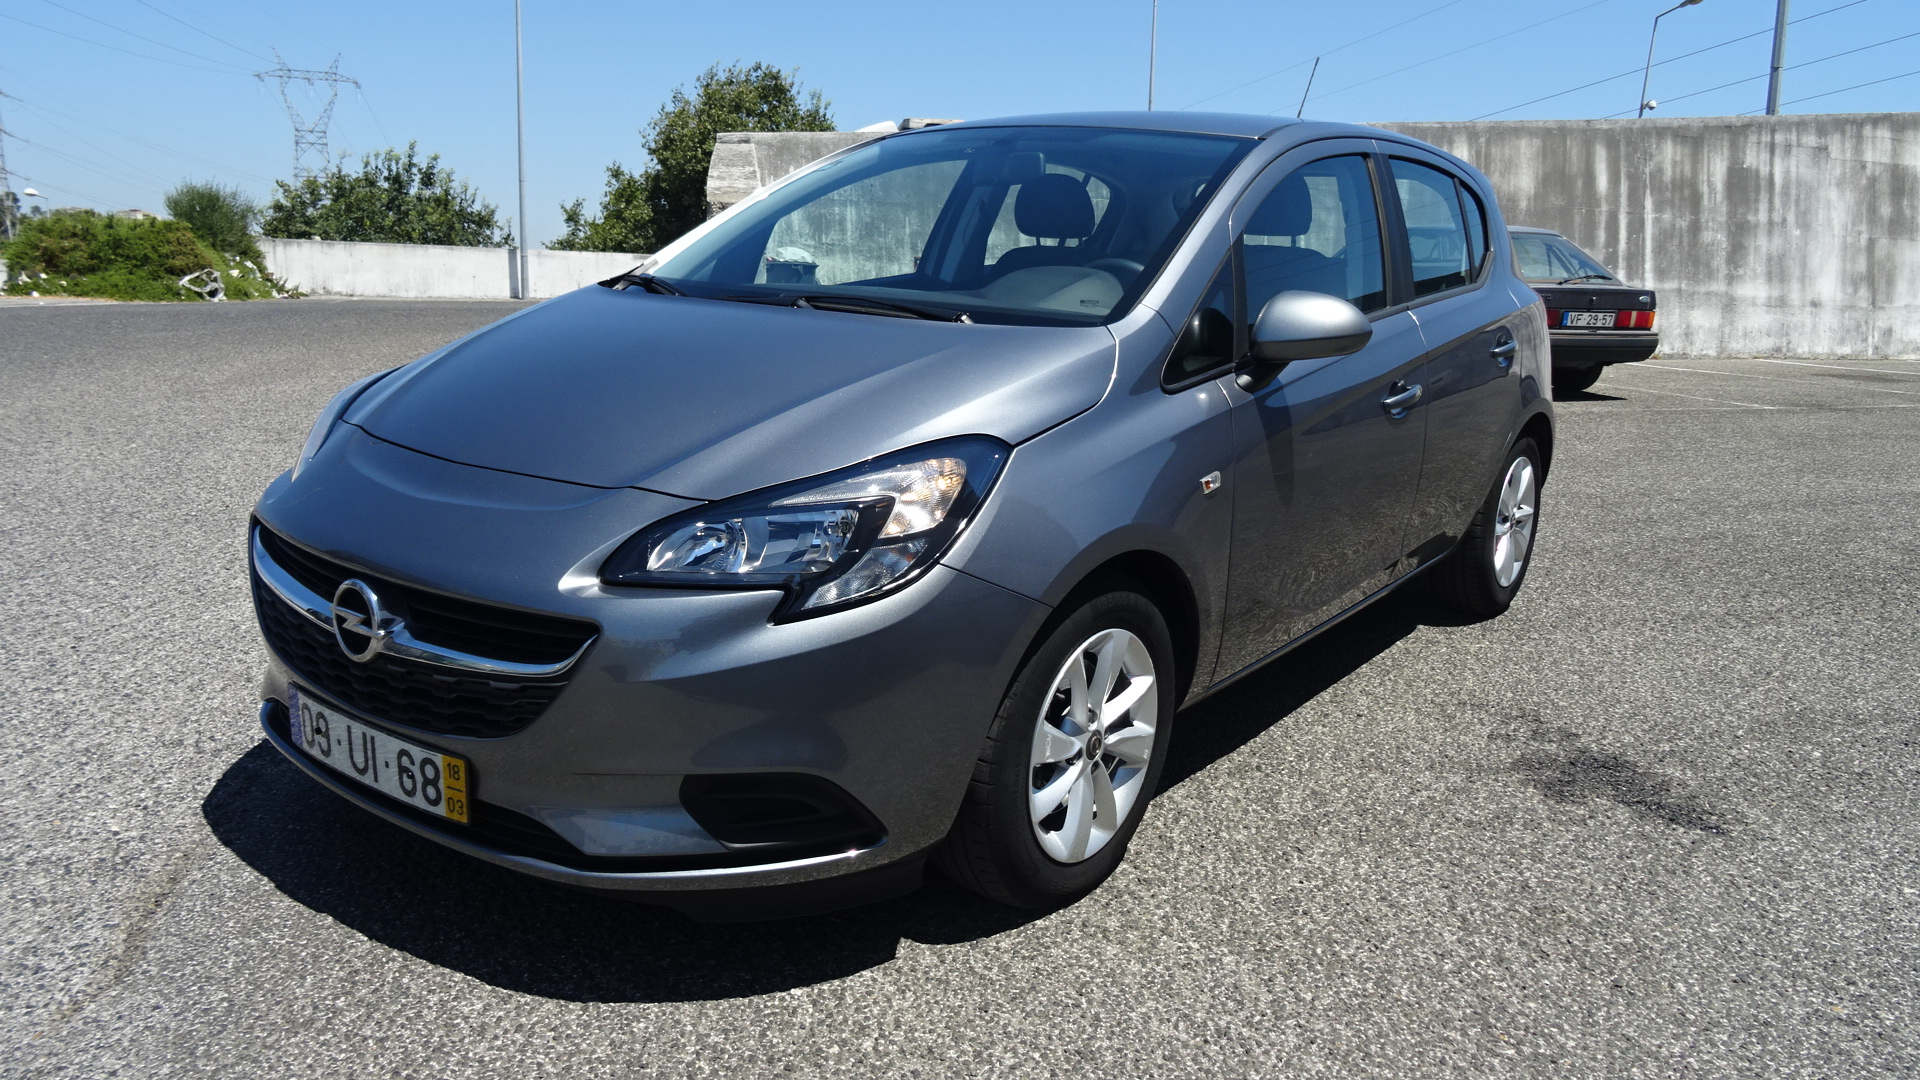 OPEL Corsa 1.3 CDTI S/S Business Edition (5p)